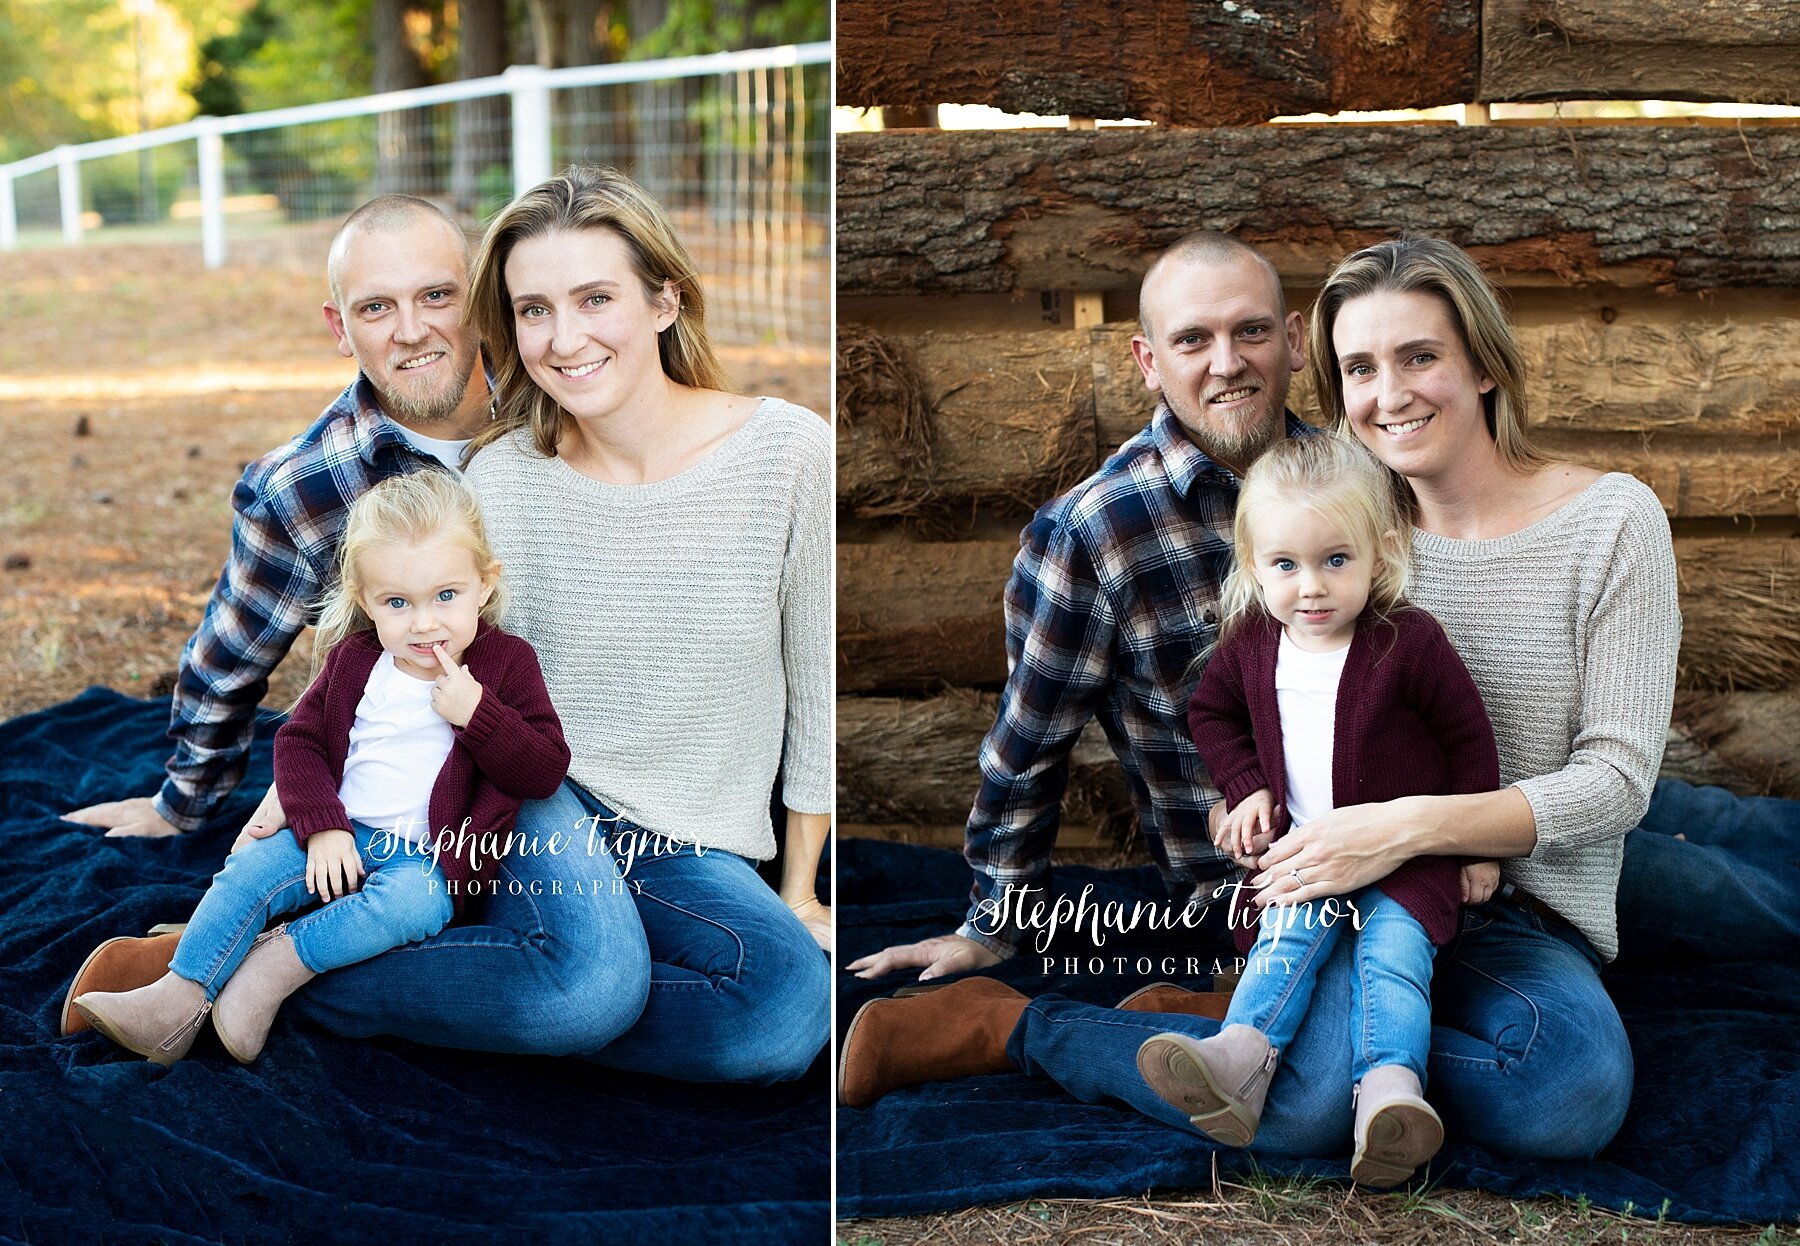 Stephanie Tignor Photography | Fall family portraits on farm in Fredericksburg VA, family portraits in Virginia, Fredericksburg VA family photographer, Virginia family photographer, VA family photos, fall family photos